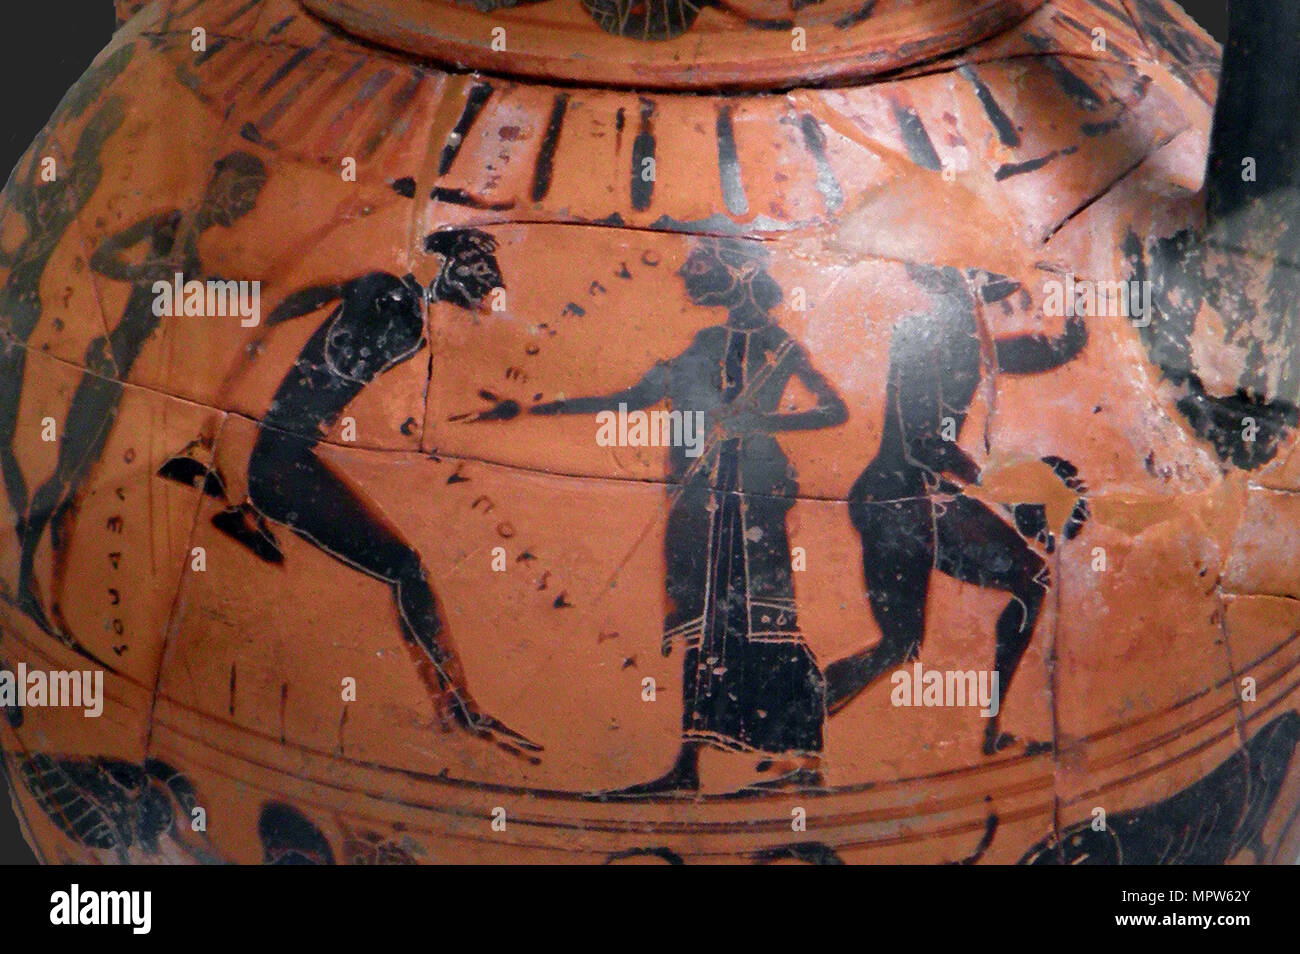 The long jump event at the ancient Olympic Games, Attic black-figured cup, 540 BC. - Stock Image